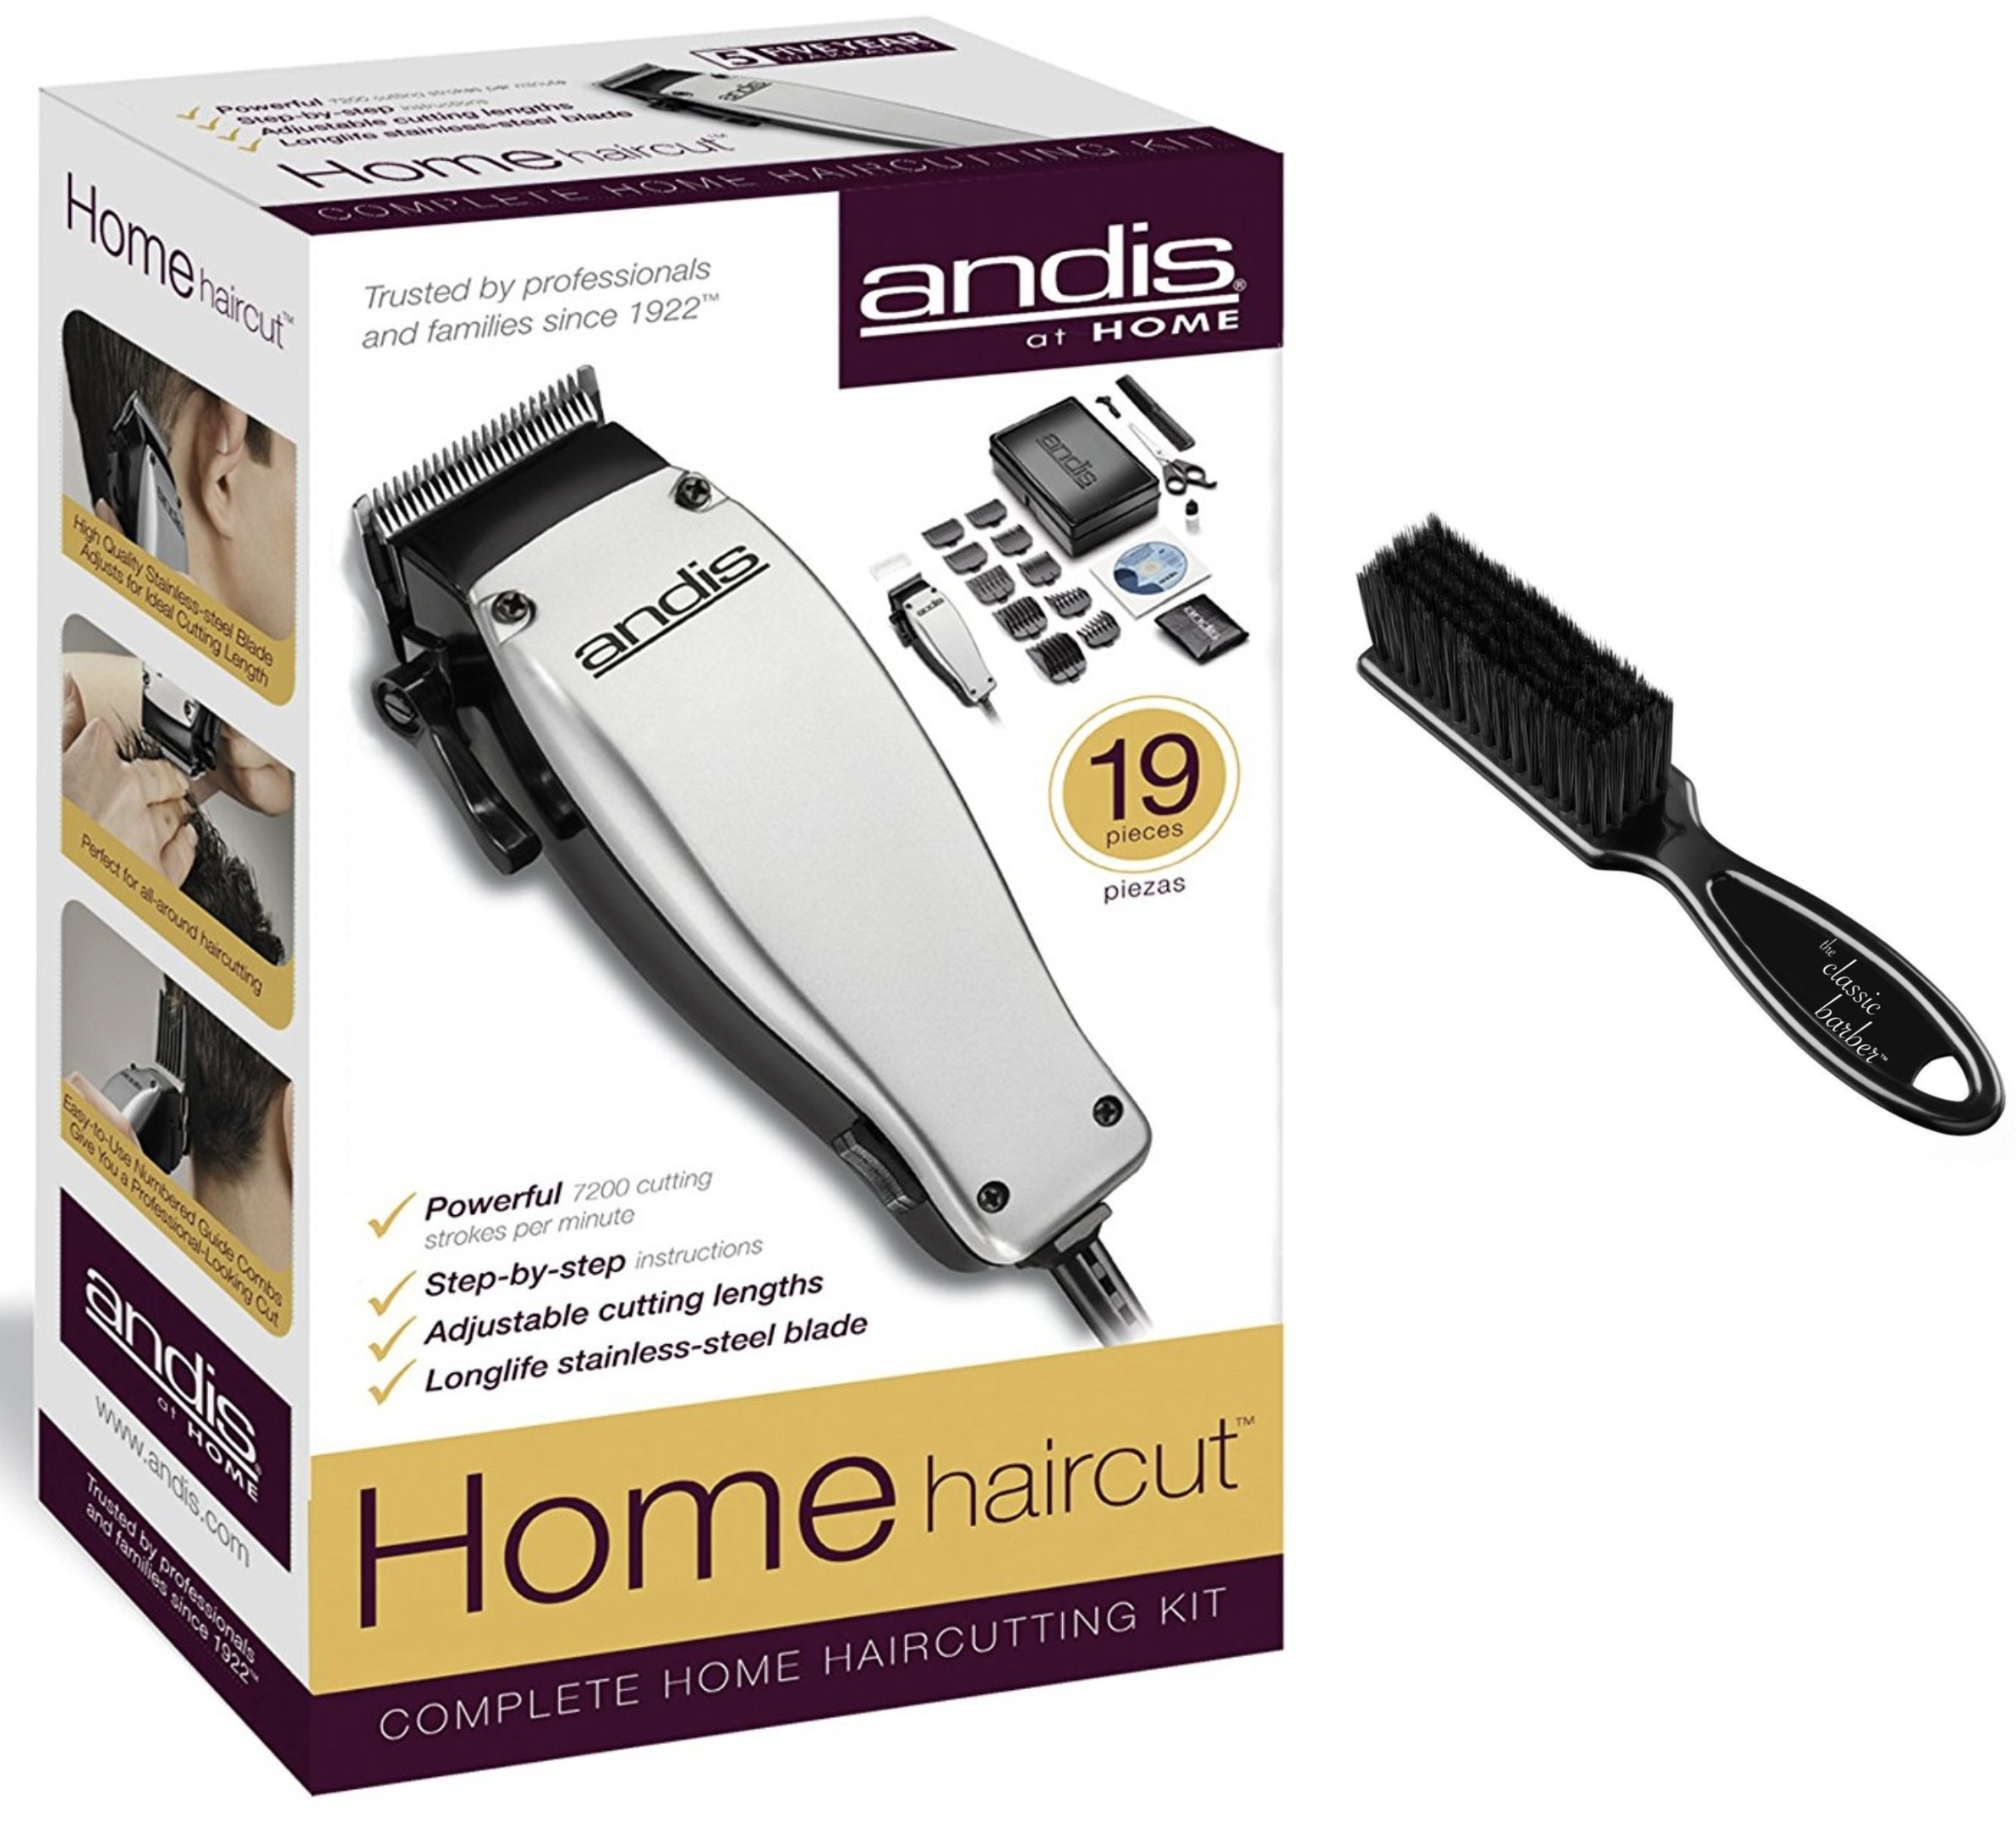 Andis 19-Piece at Home Haircutting Kit, Silver, Model MC-2 (18645) & Classic Barber Blade Brush